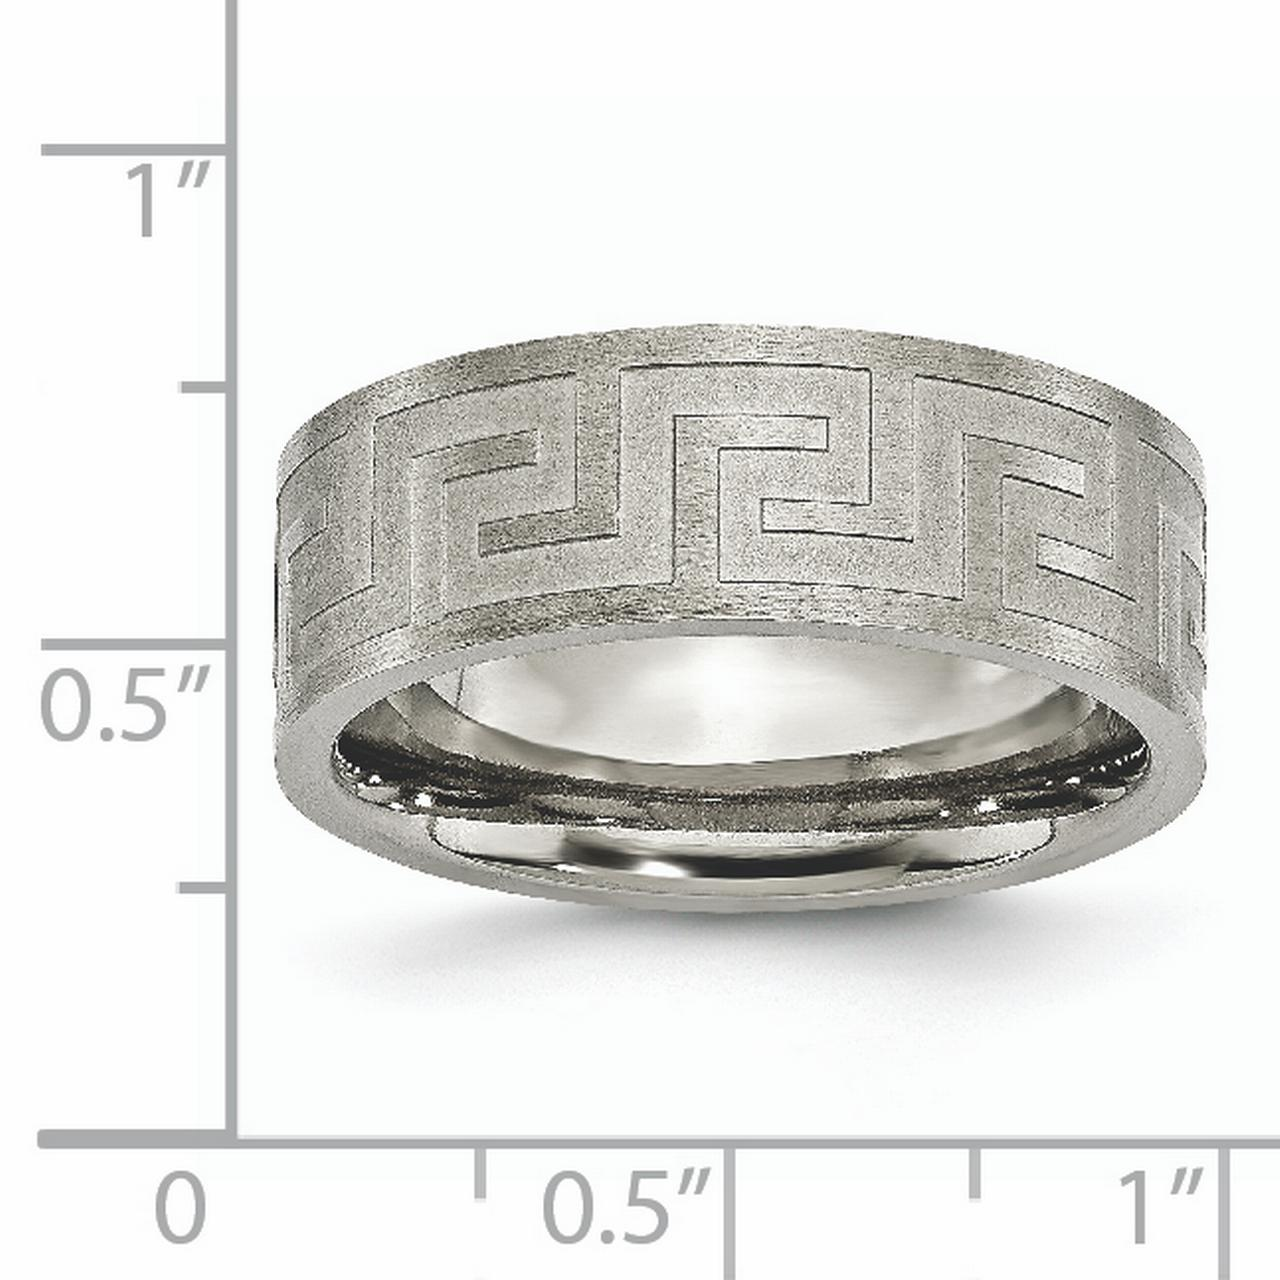 Titanium Greek Key 8mm Wedding Ring Band Size 8.50 Designed Fashion Jewelry Gifts For Women For Her - image 3 of 6